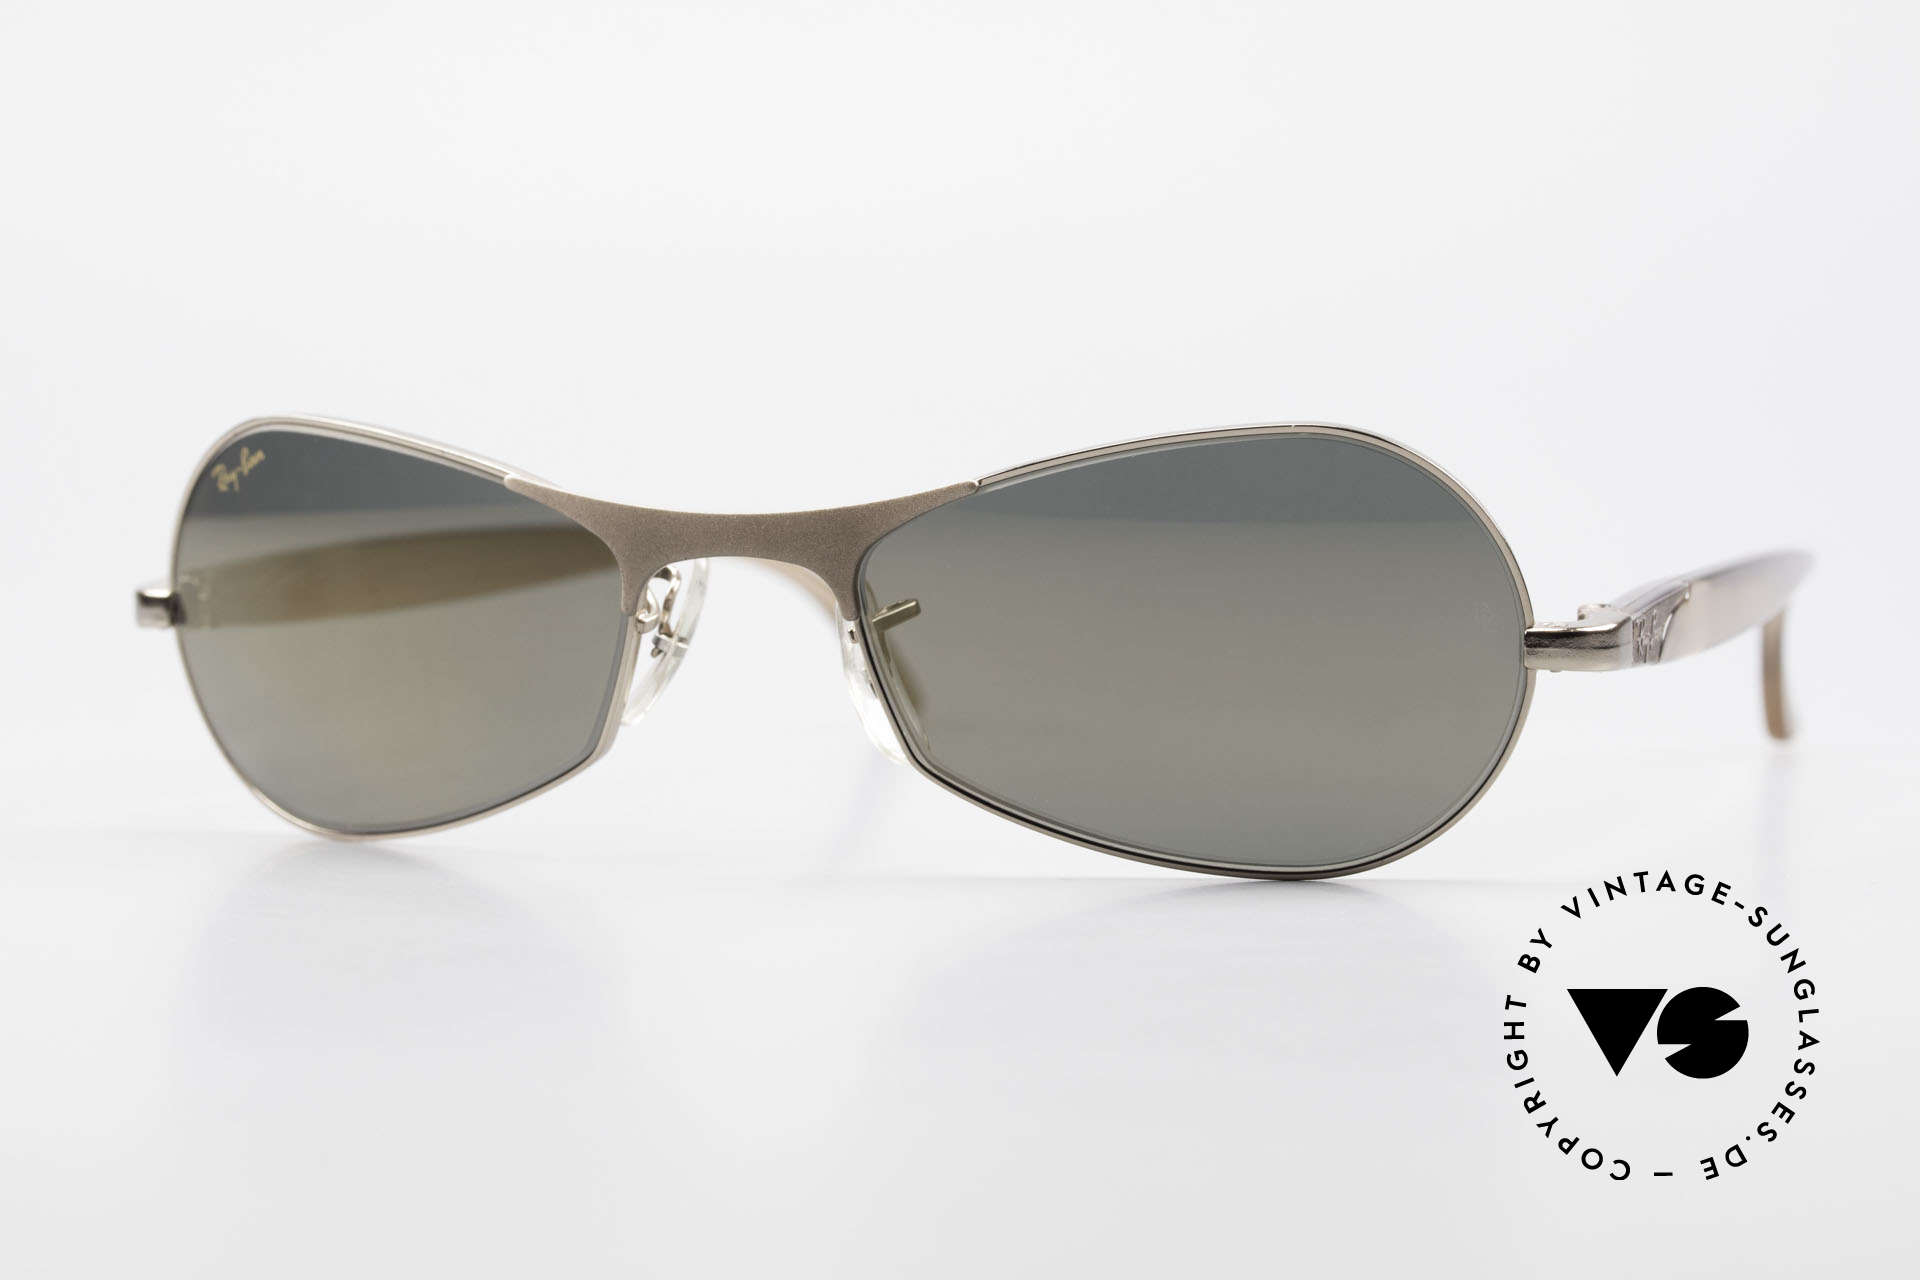 """Ray Ban Sidestreet Infinity Gold Mirrored USA Ray-Ban B&L, old Ray-Ban 'SideStreet-Series"""" sunglasses from 1999, Made for Men"""